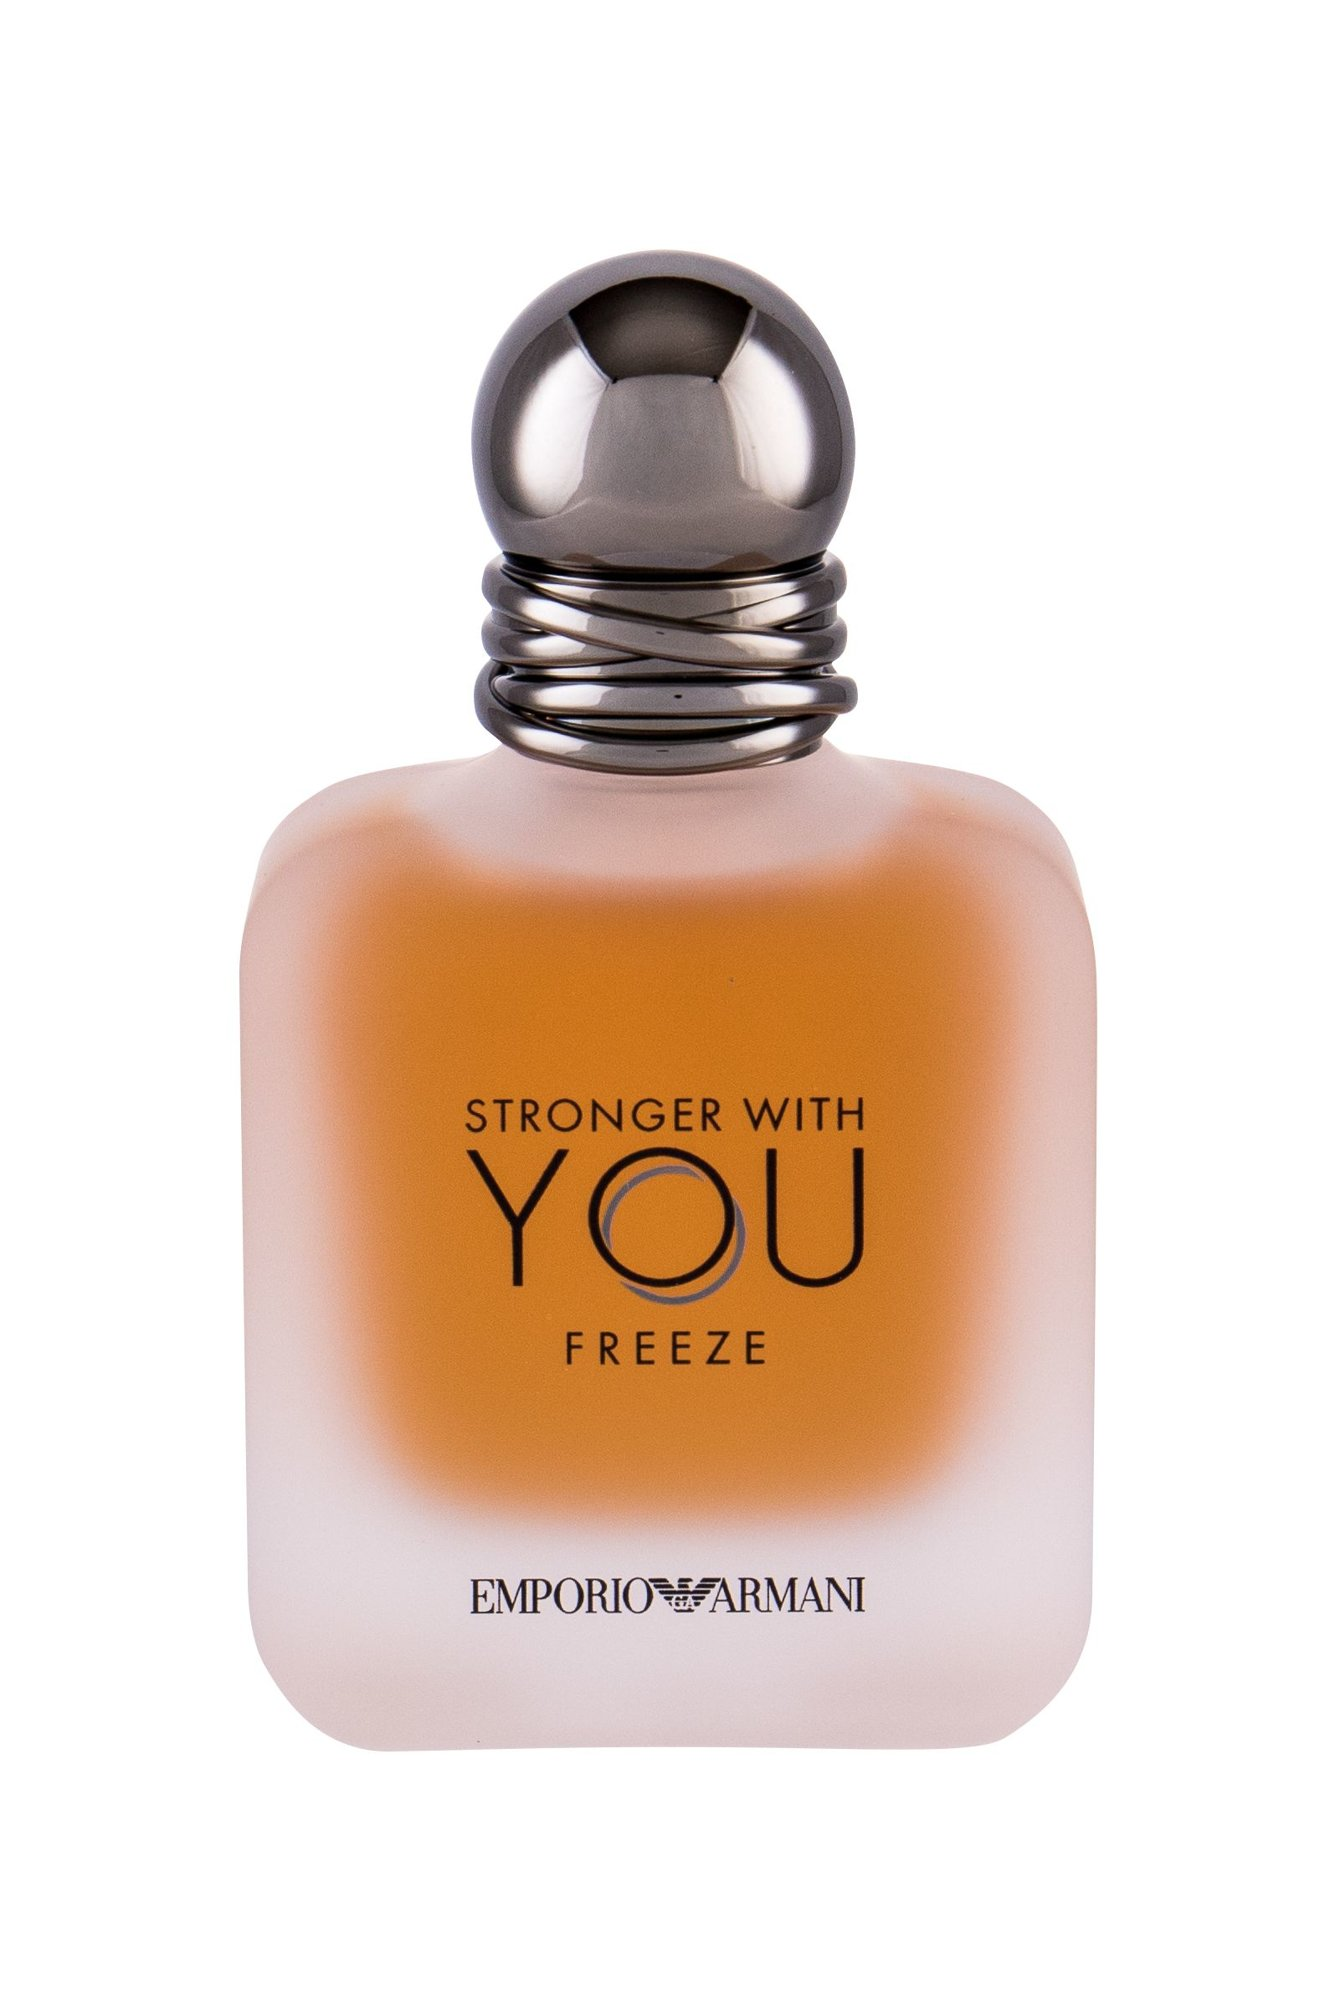 Giorgio Armani Emporio Armani Stronger With You Freeze, edt 50ml